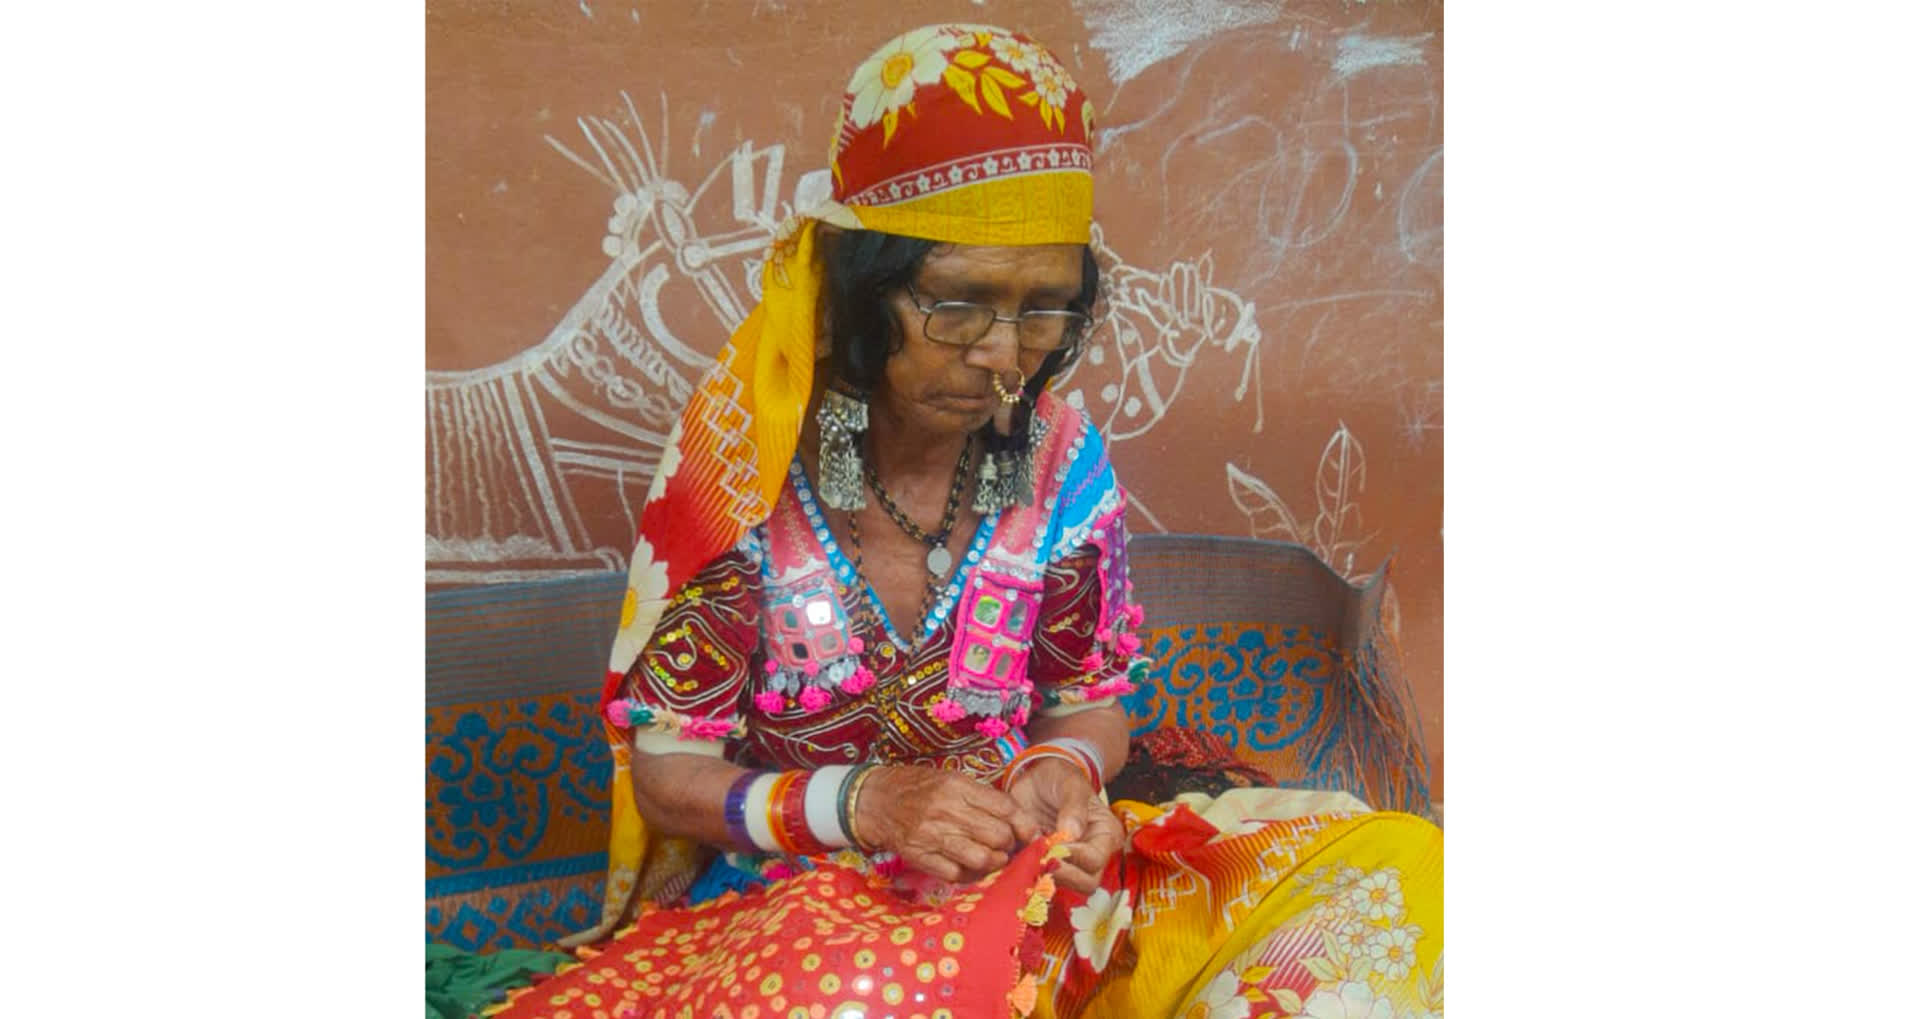 A Lambani woman dressed in the traditional attire